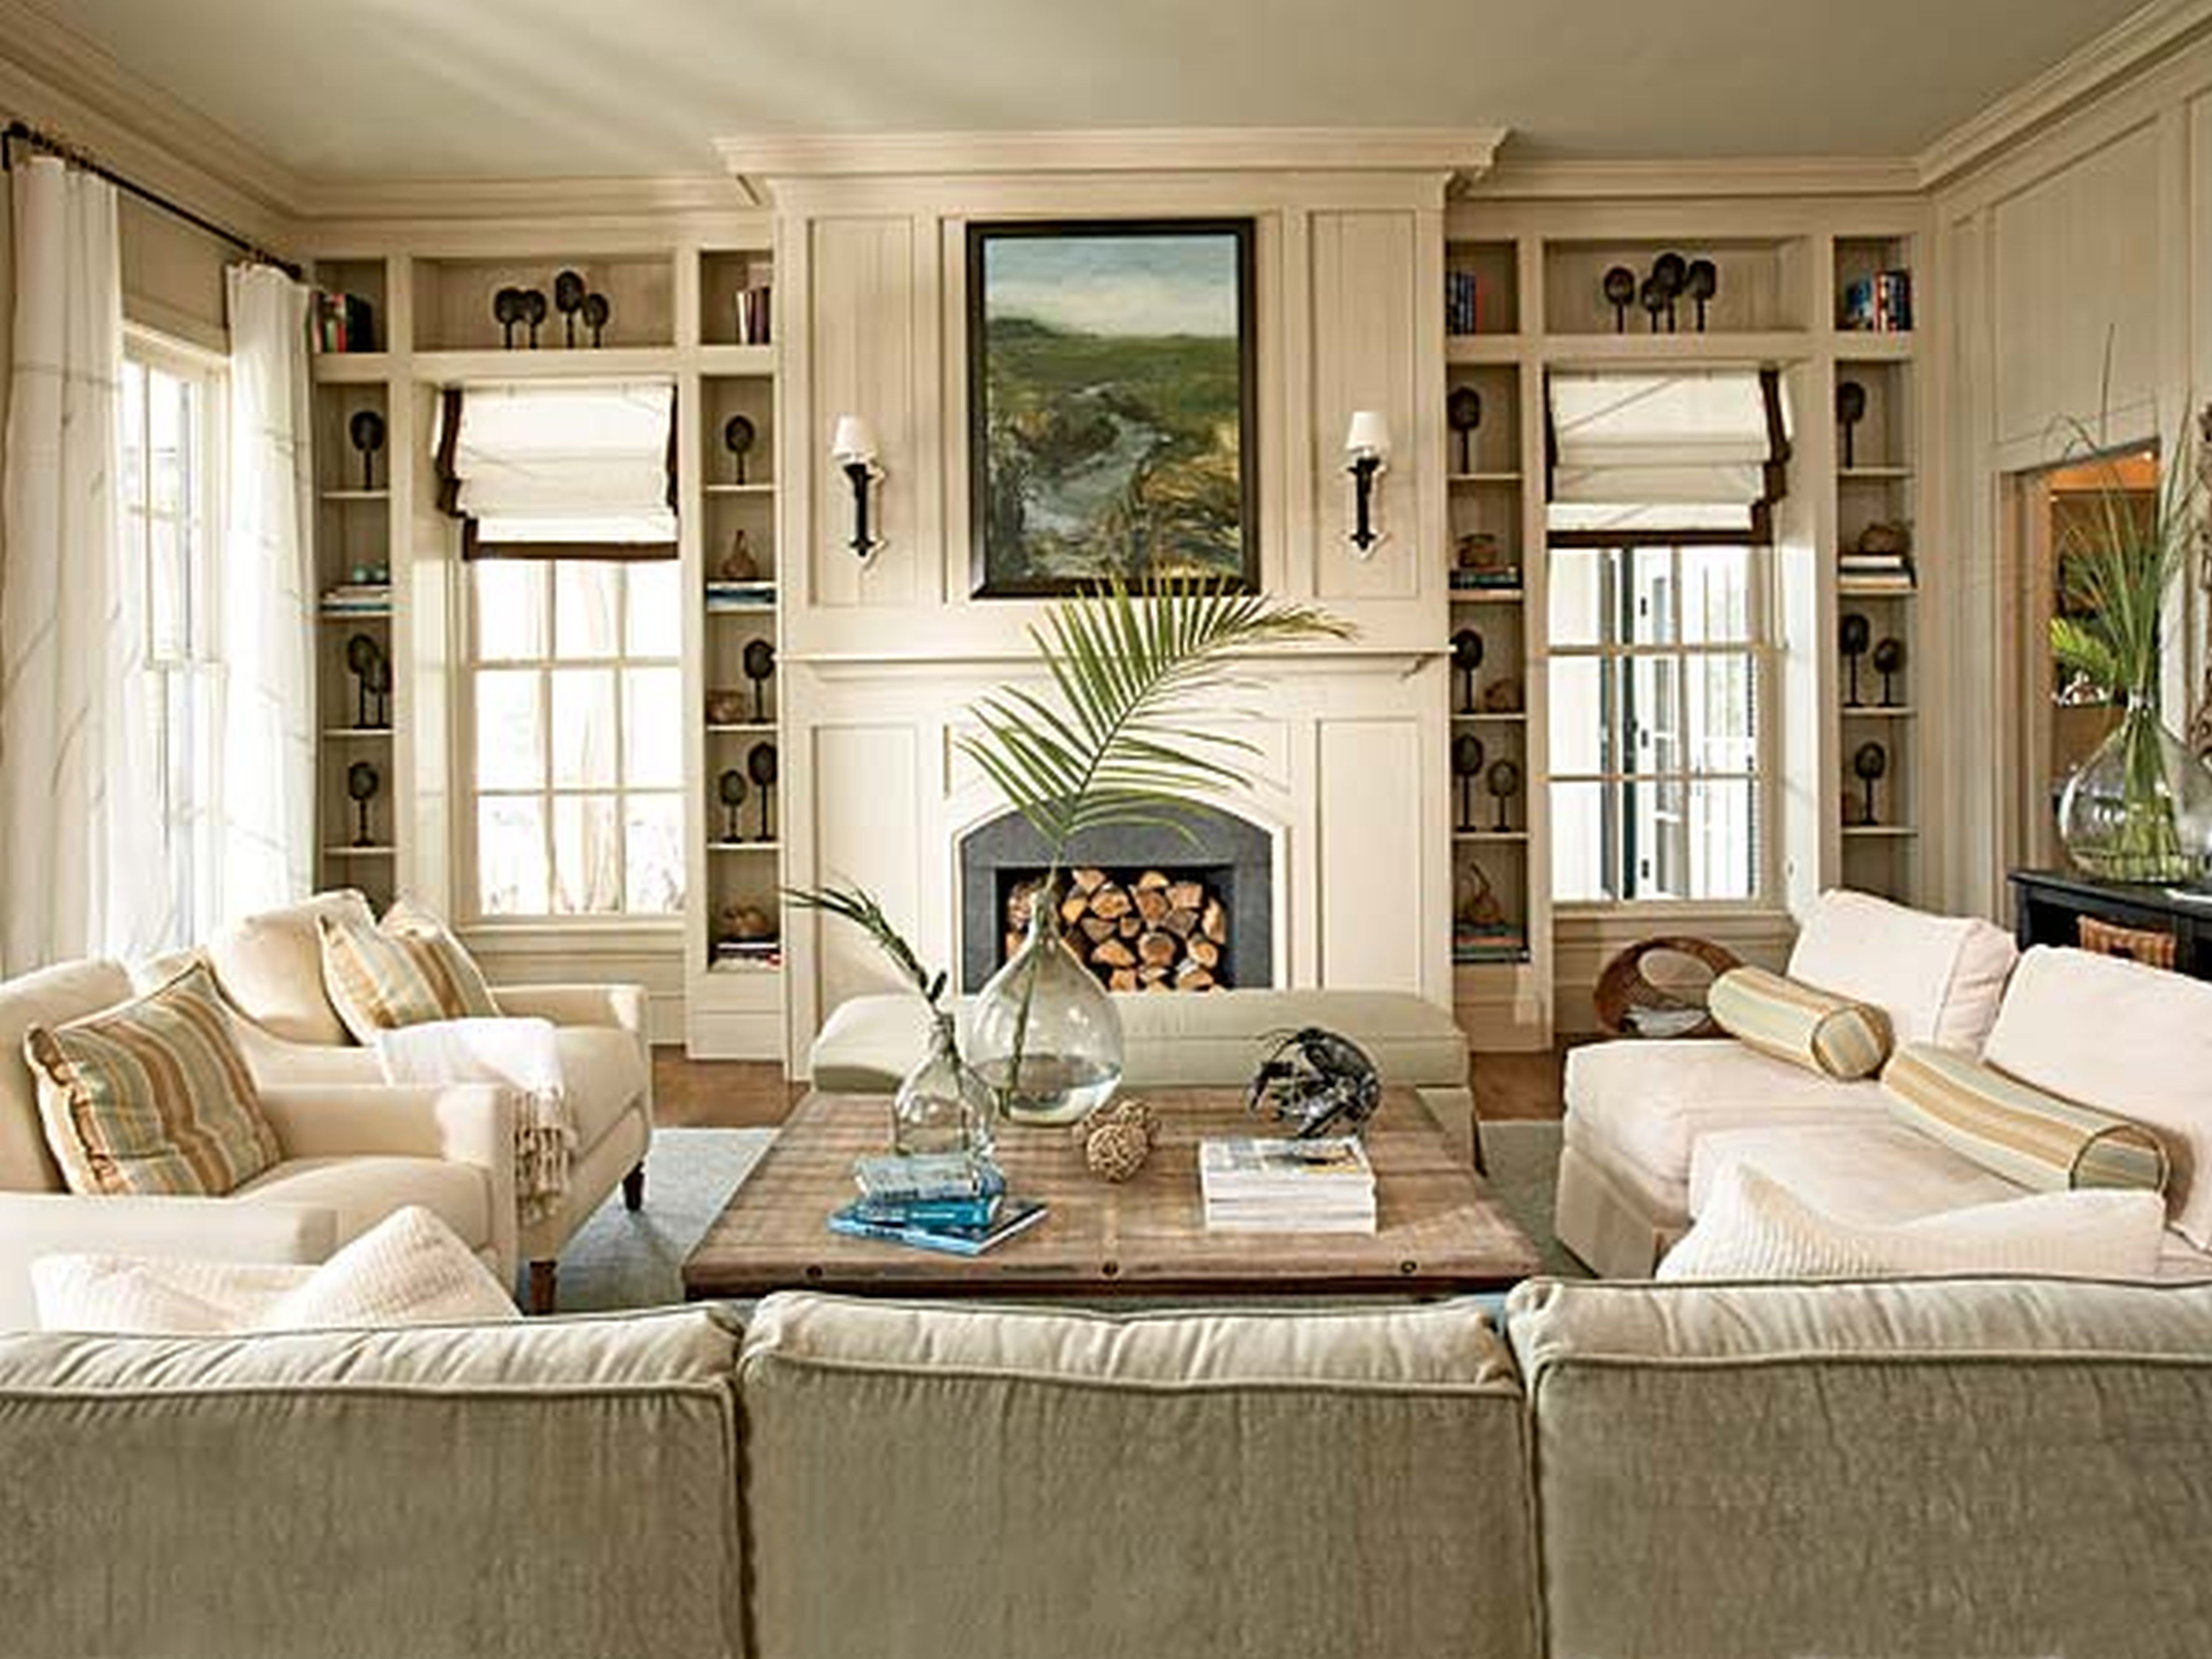 gorgeous home designs ideas. Beautiful Home Design Ideas Interior Plan Gorgeous Enchanting  Living Room Fireplace 2018 Condo With